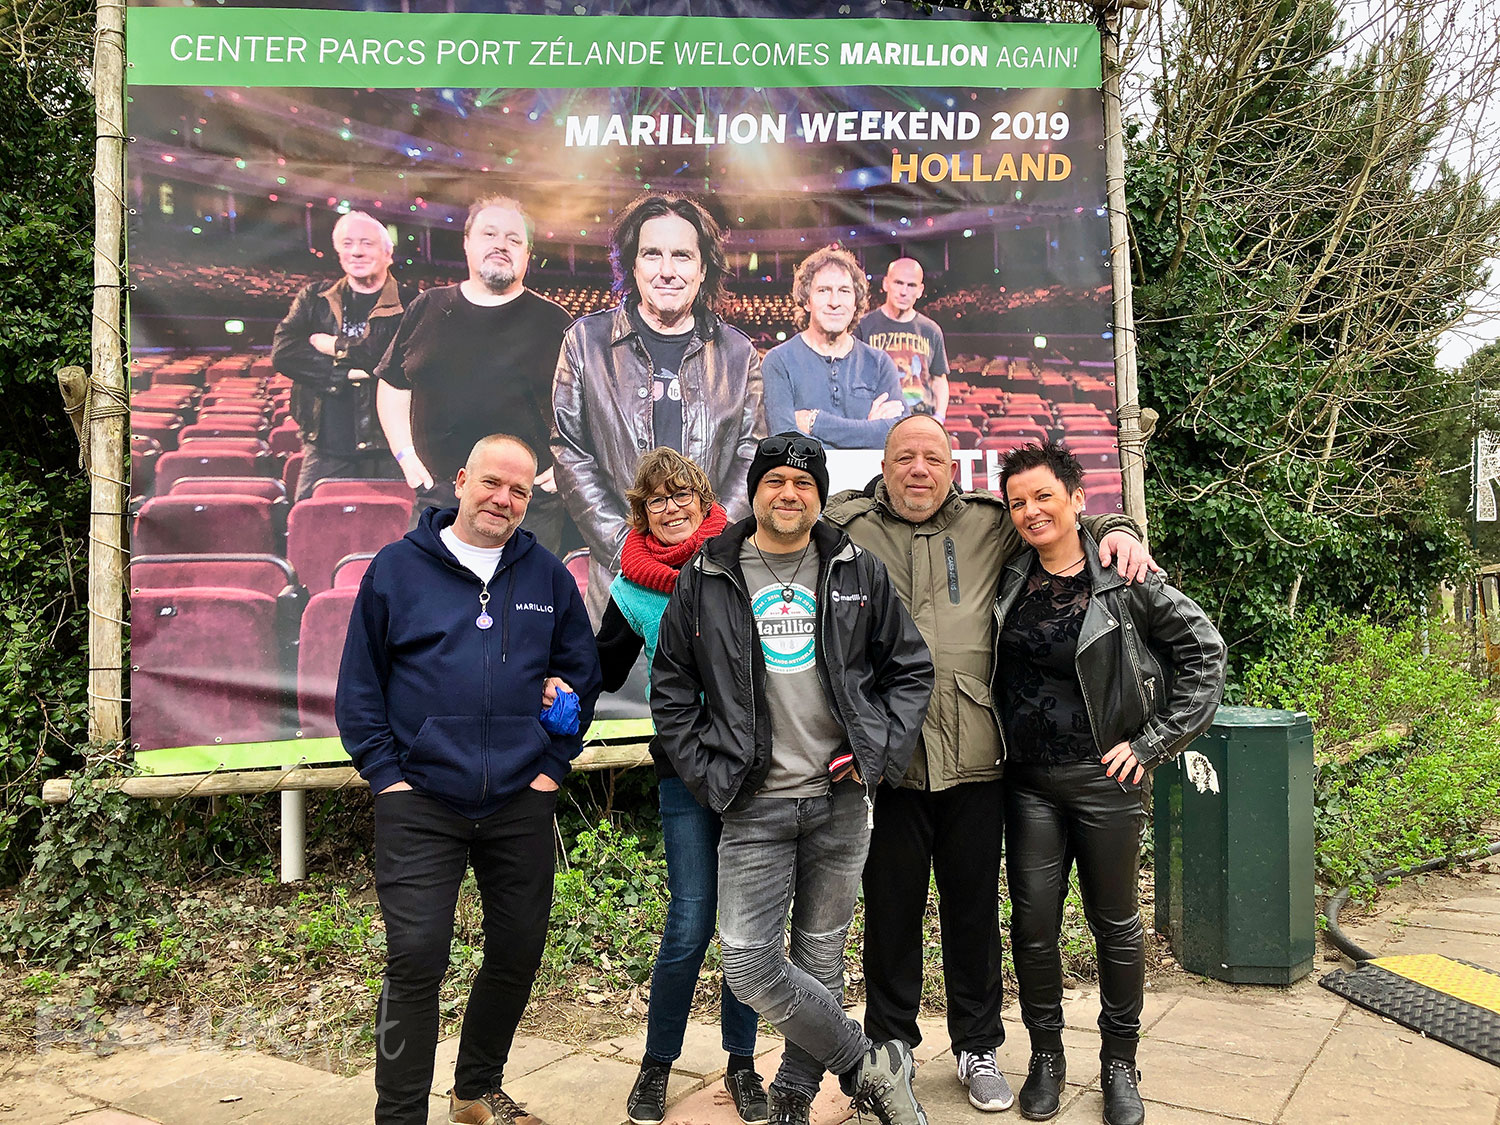 Marillion at Marillion Weekend Convention NL 2019, Marillion Weekend 2019